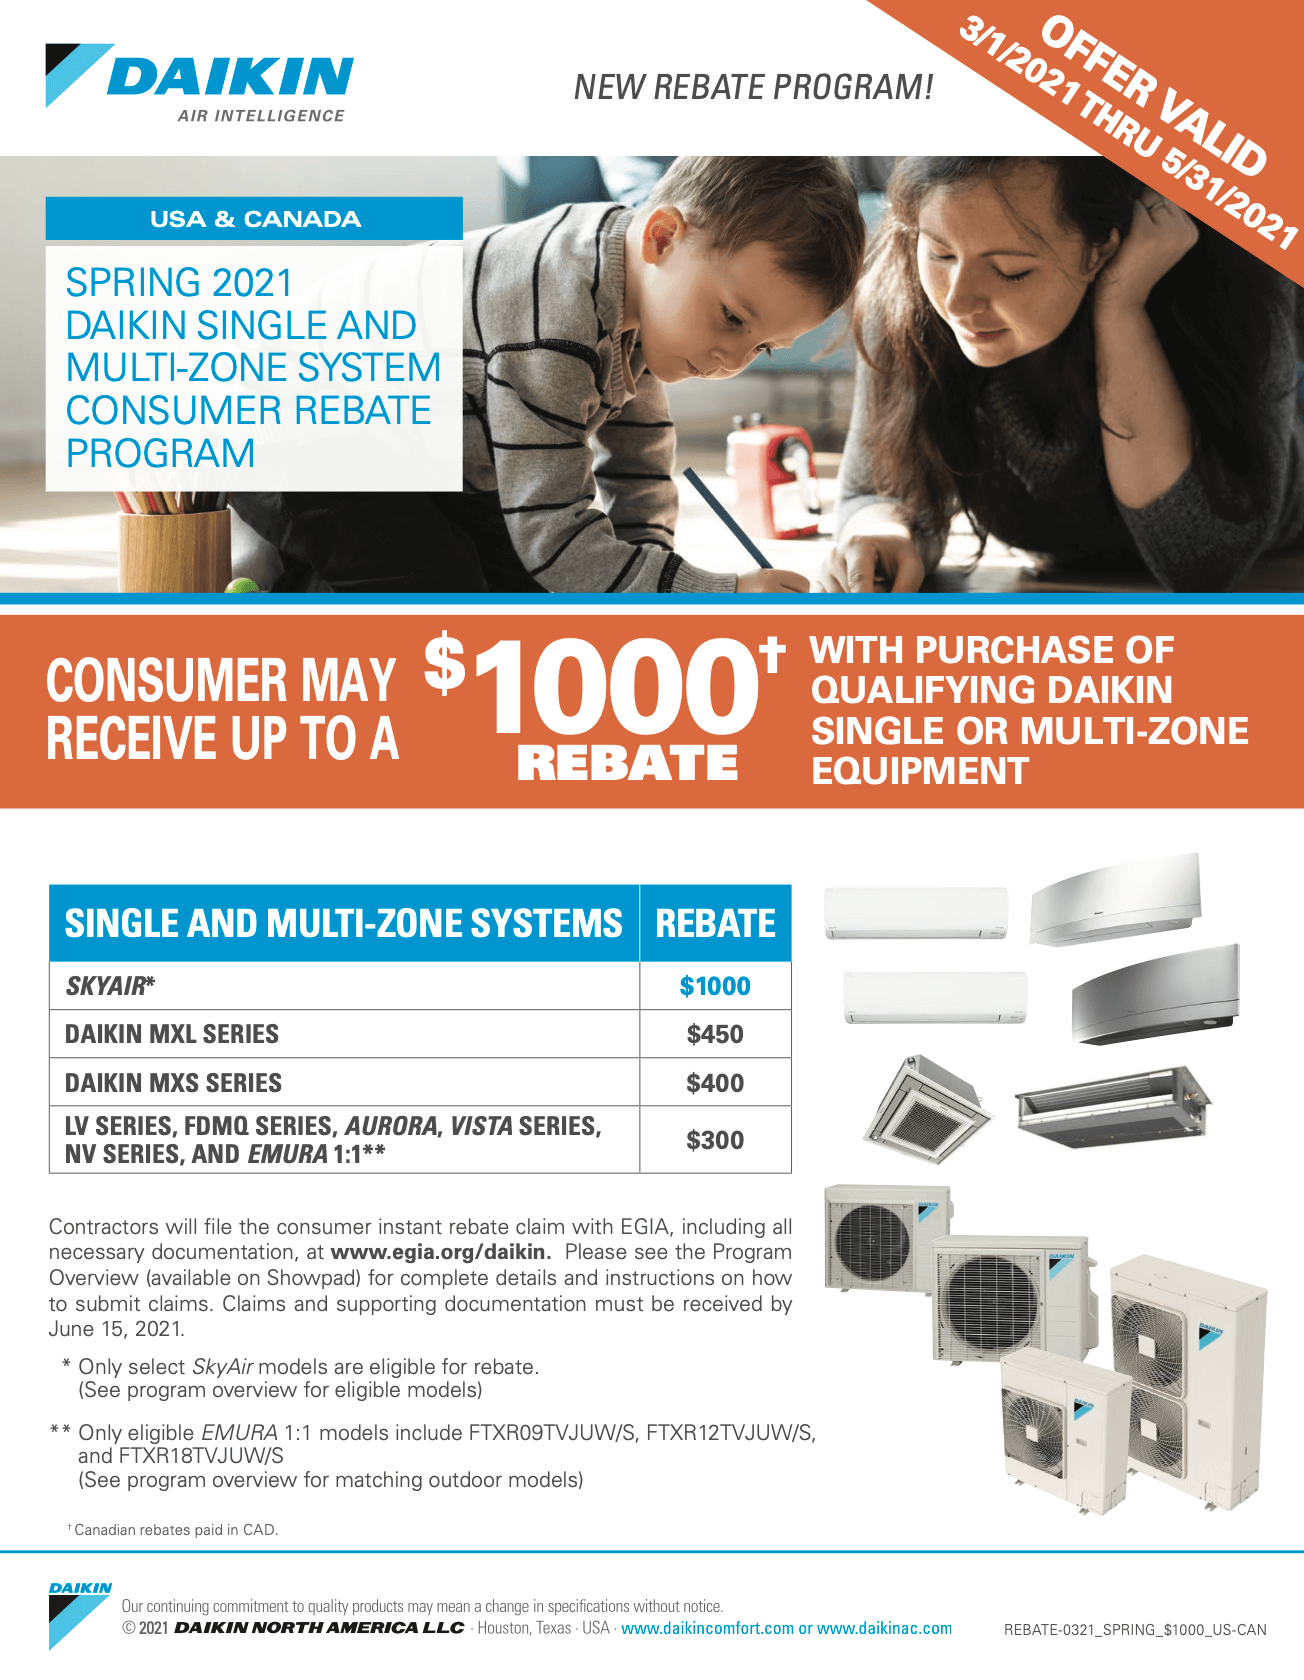 Daikin REBATE SPRING $1000 CAN